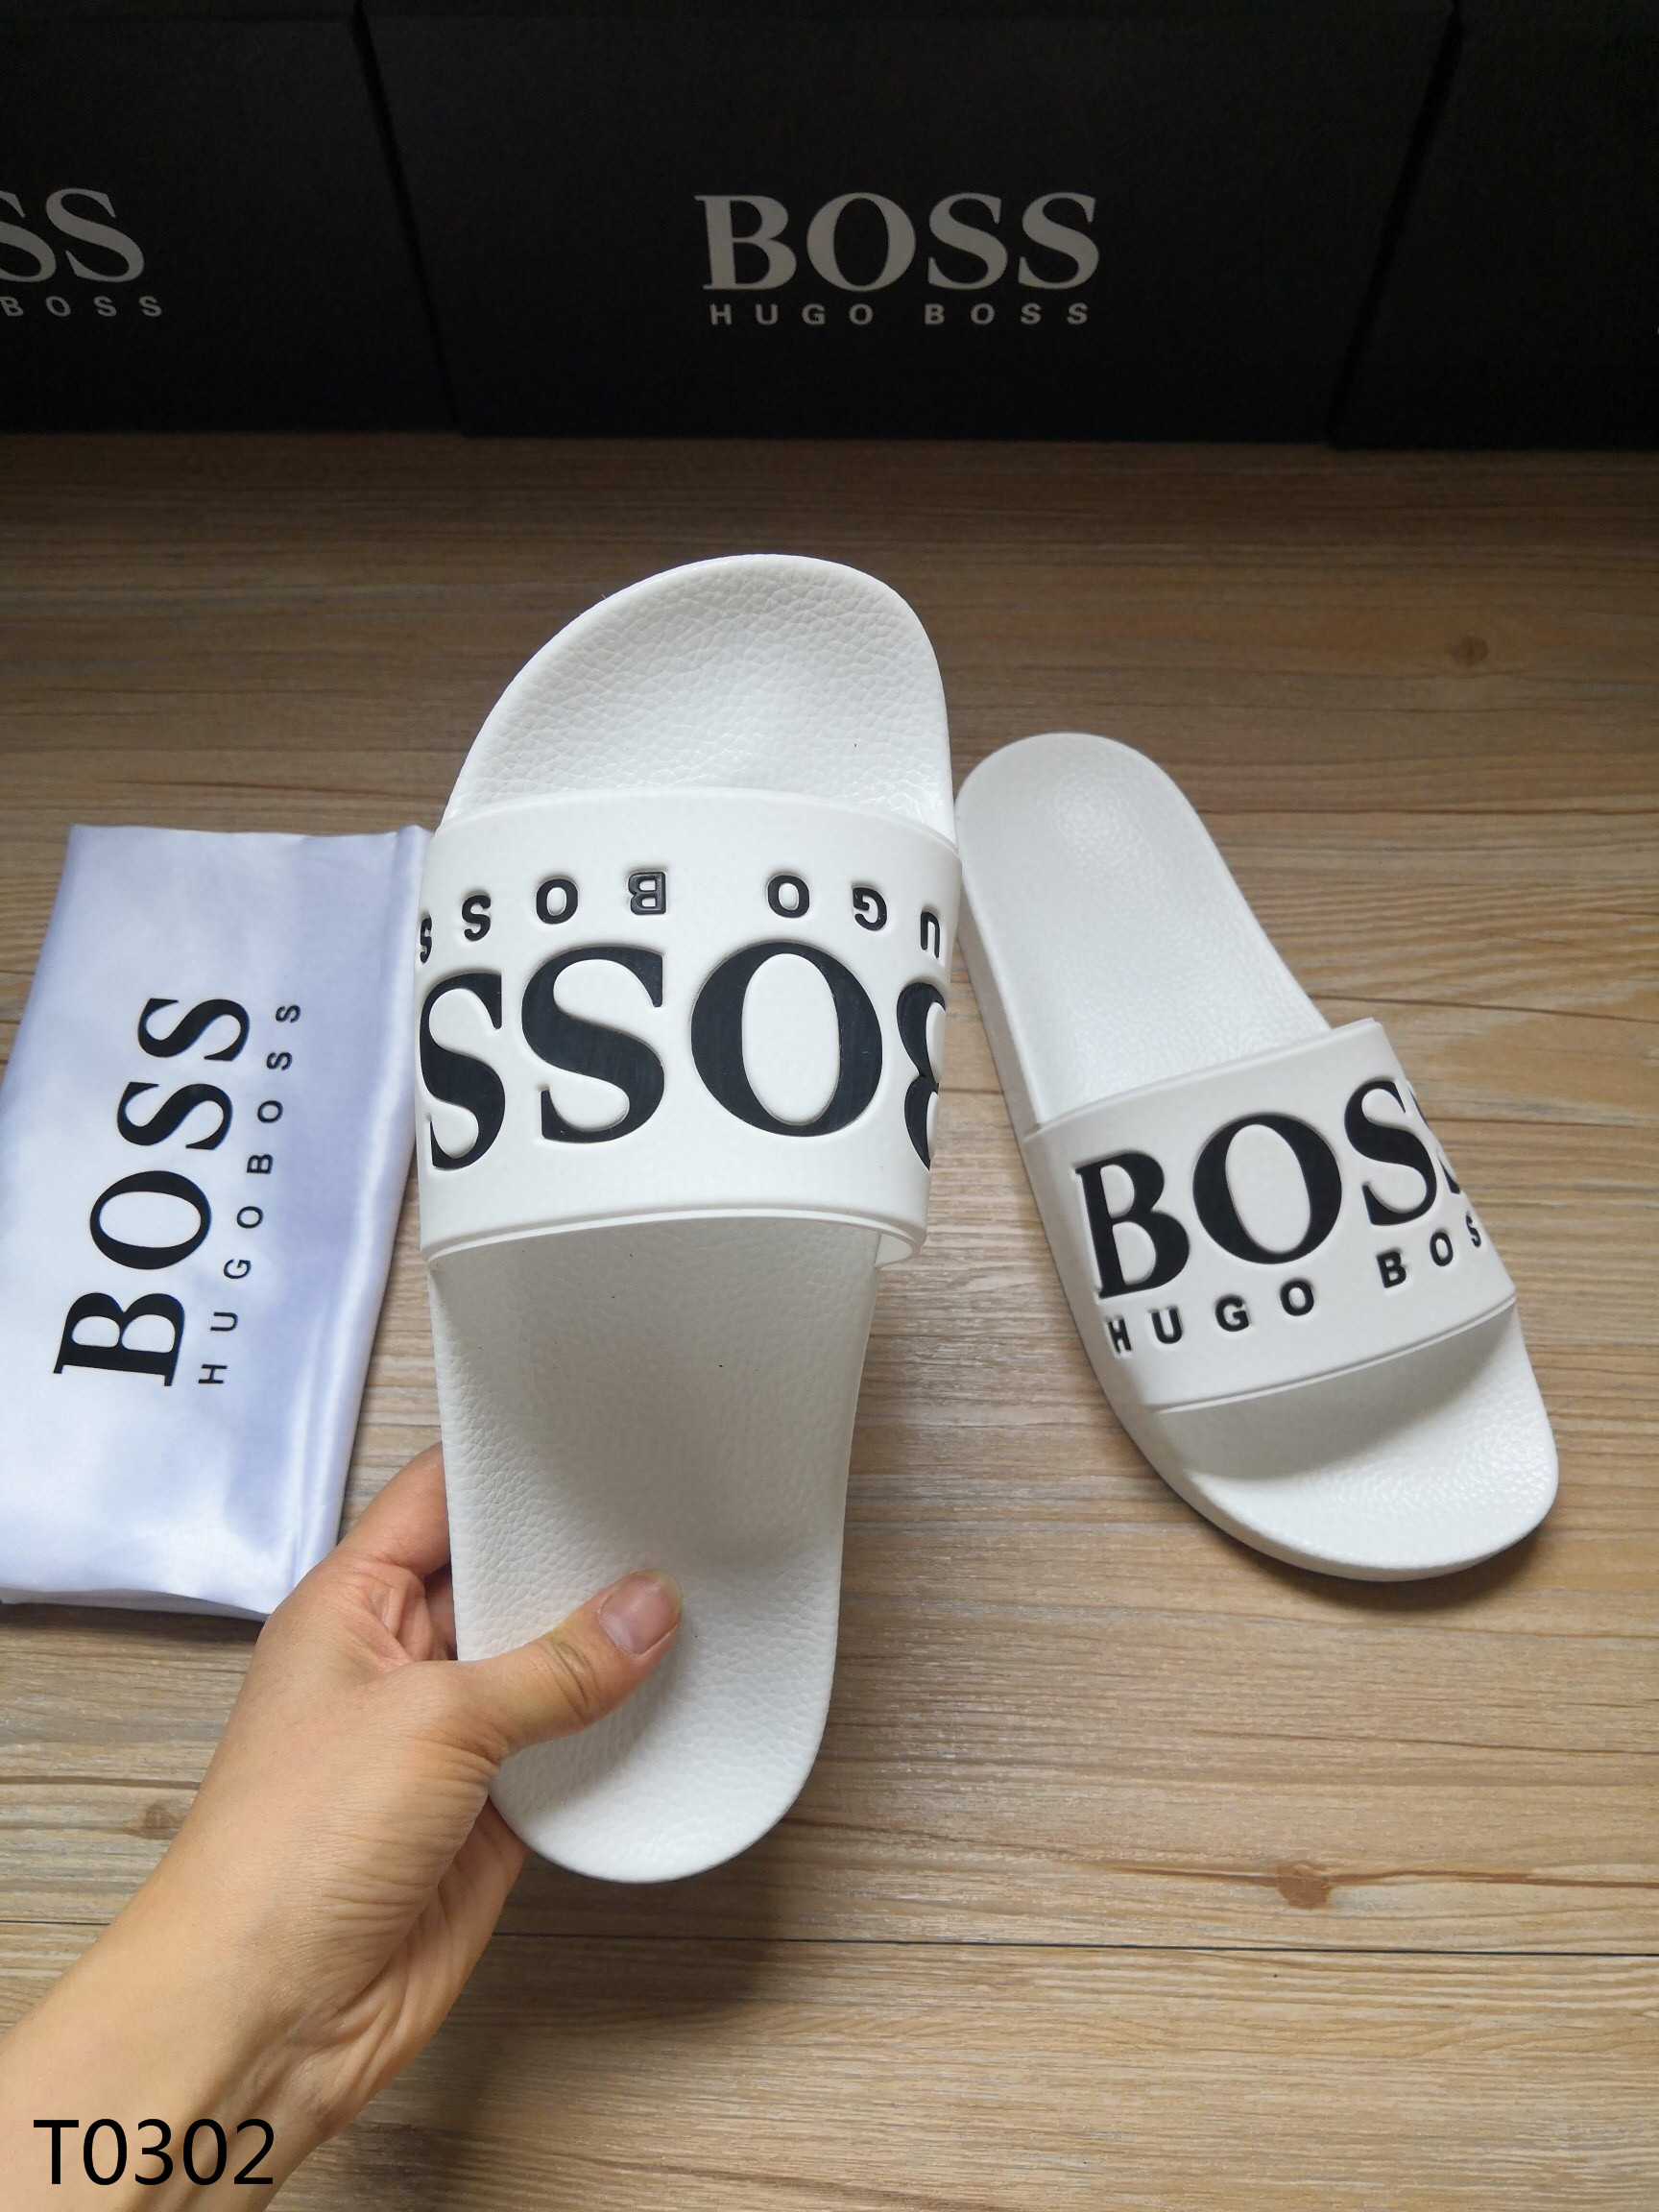 Hugo Boss Men's Slippers 02